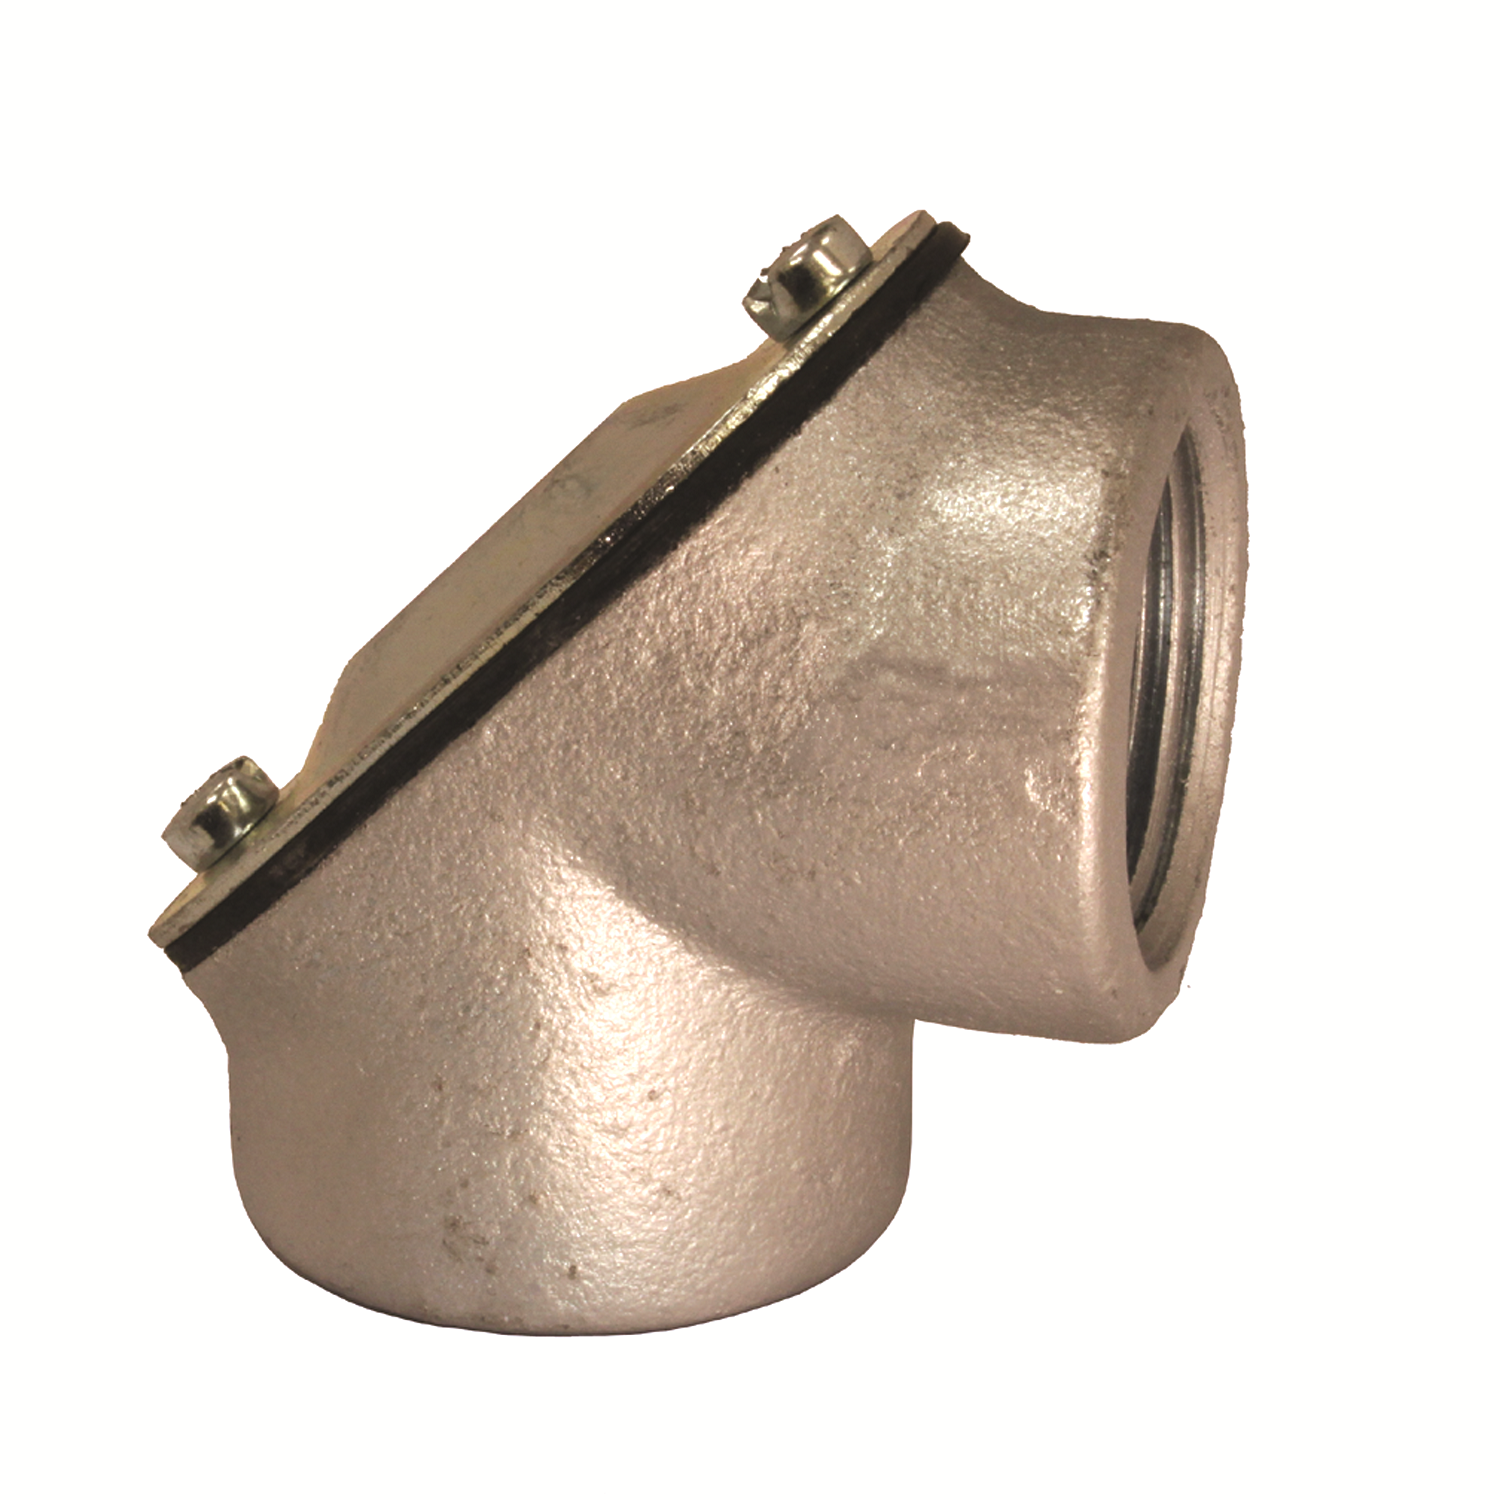 Konkore Fittings PEF-100KON Female x Female Pull Elbow With Steel Cover, Neoprene Gasket, 1 in Trade, 90 deg, Malleable Iron, Zinc Plated